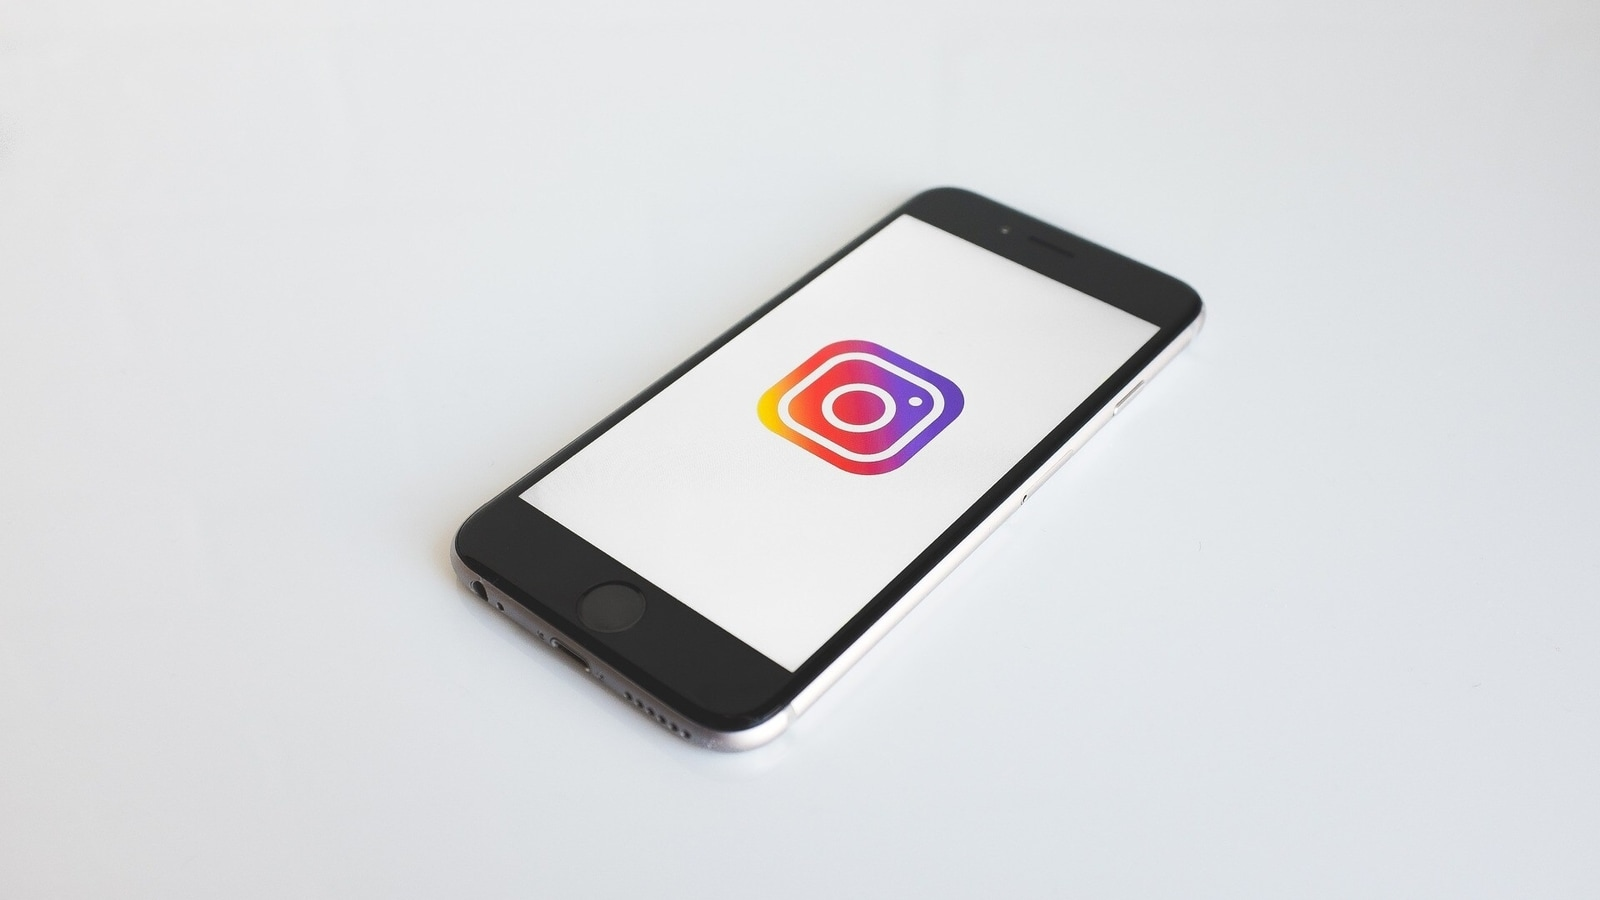 How to create a guide on Instagram to help people with important Covid-19 information